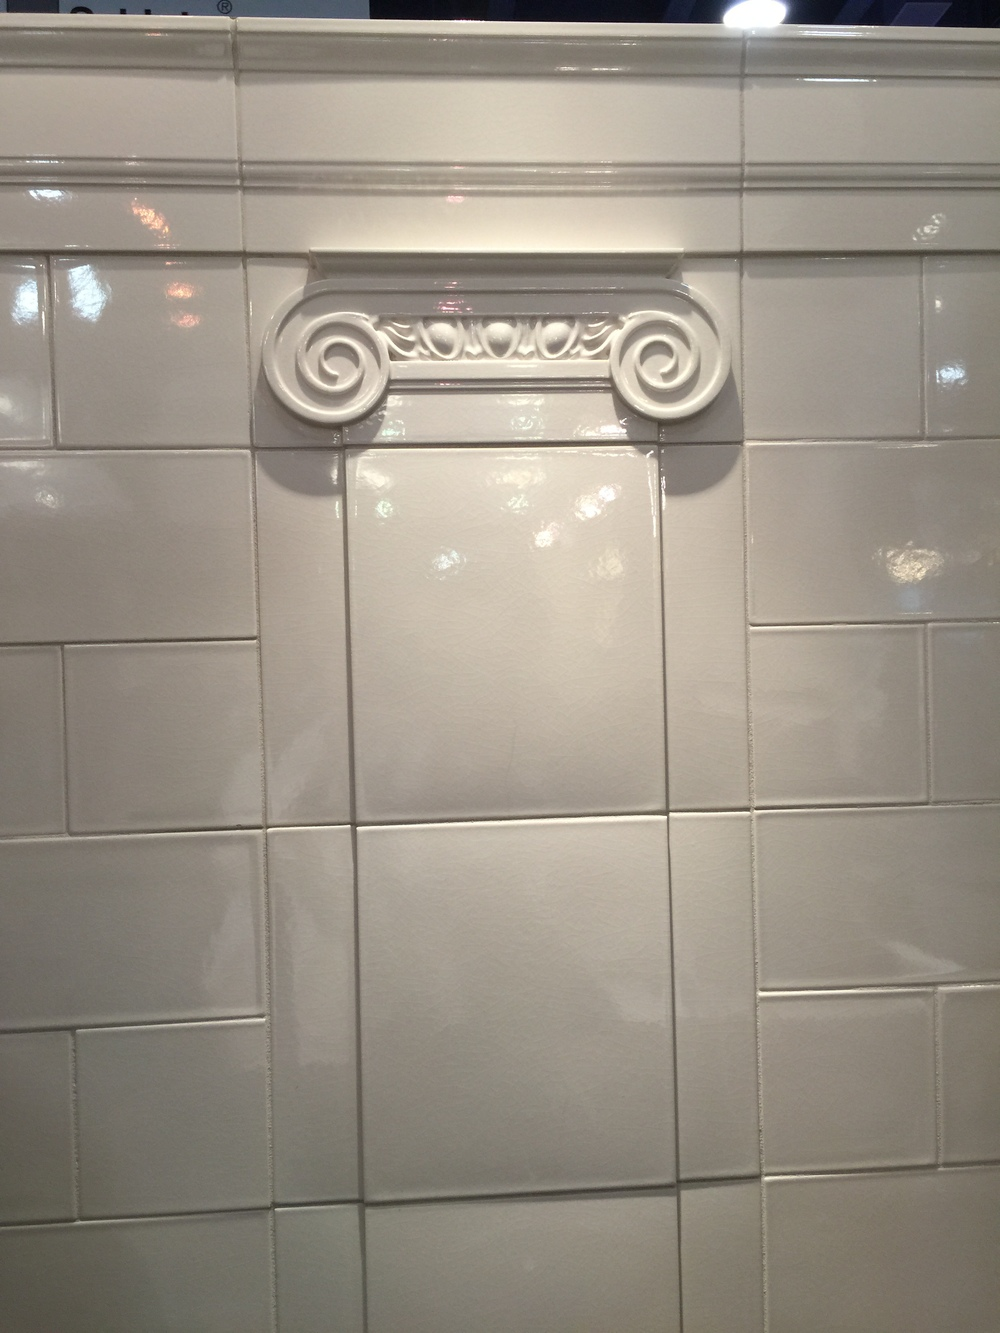 Best of #KBIS2015: Walker Zanger's Robert A.M. Stern Tile Collection |  Carla Aston reporting from Modenus' #BlogTourVegas